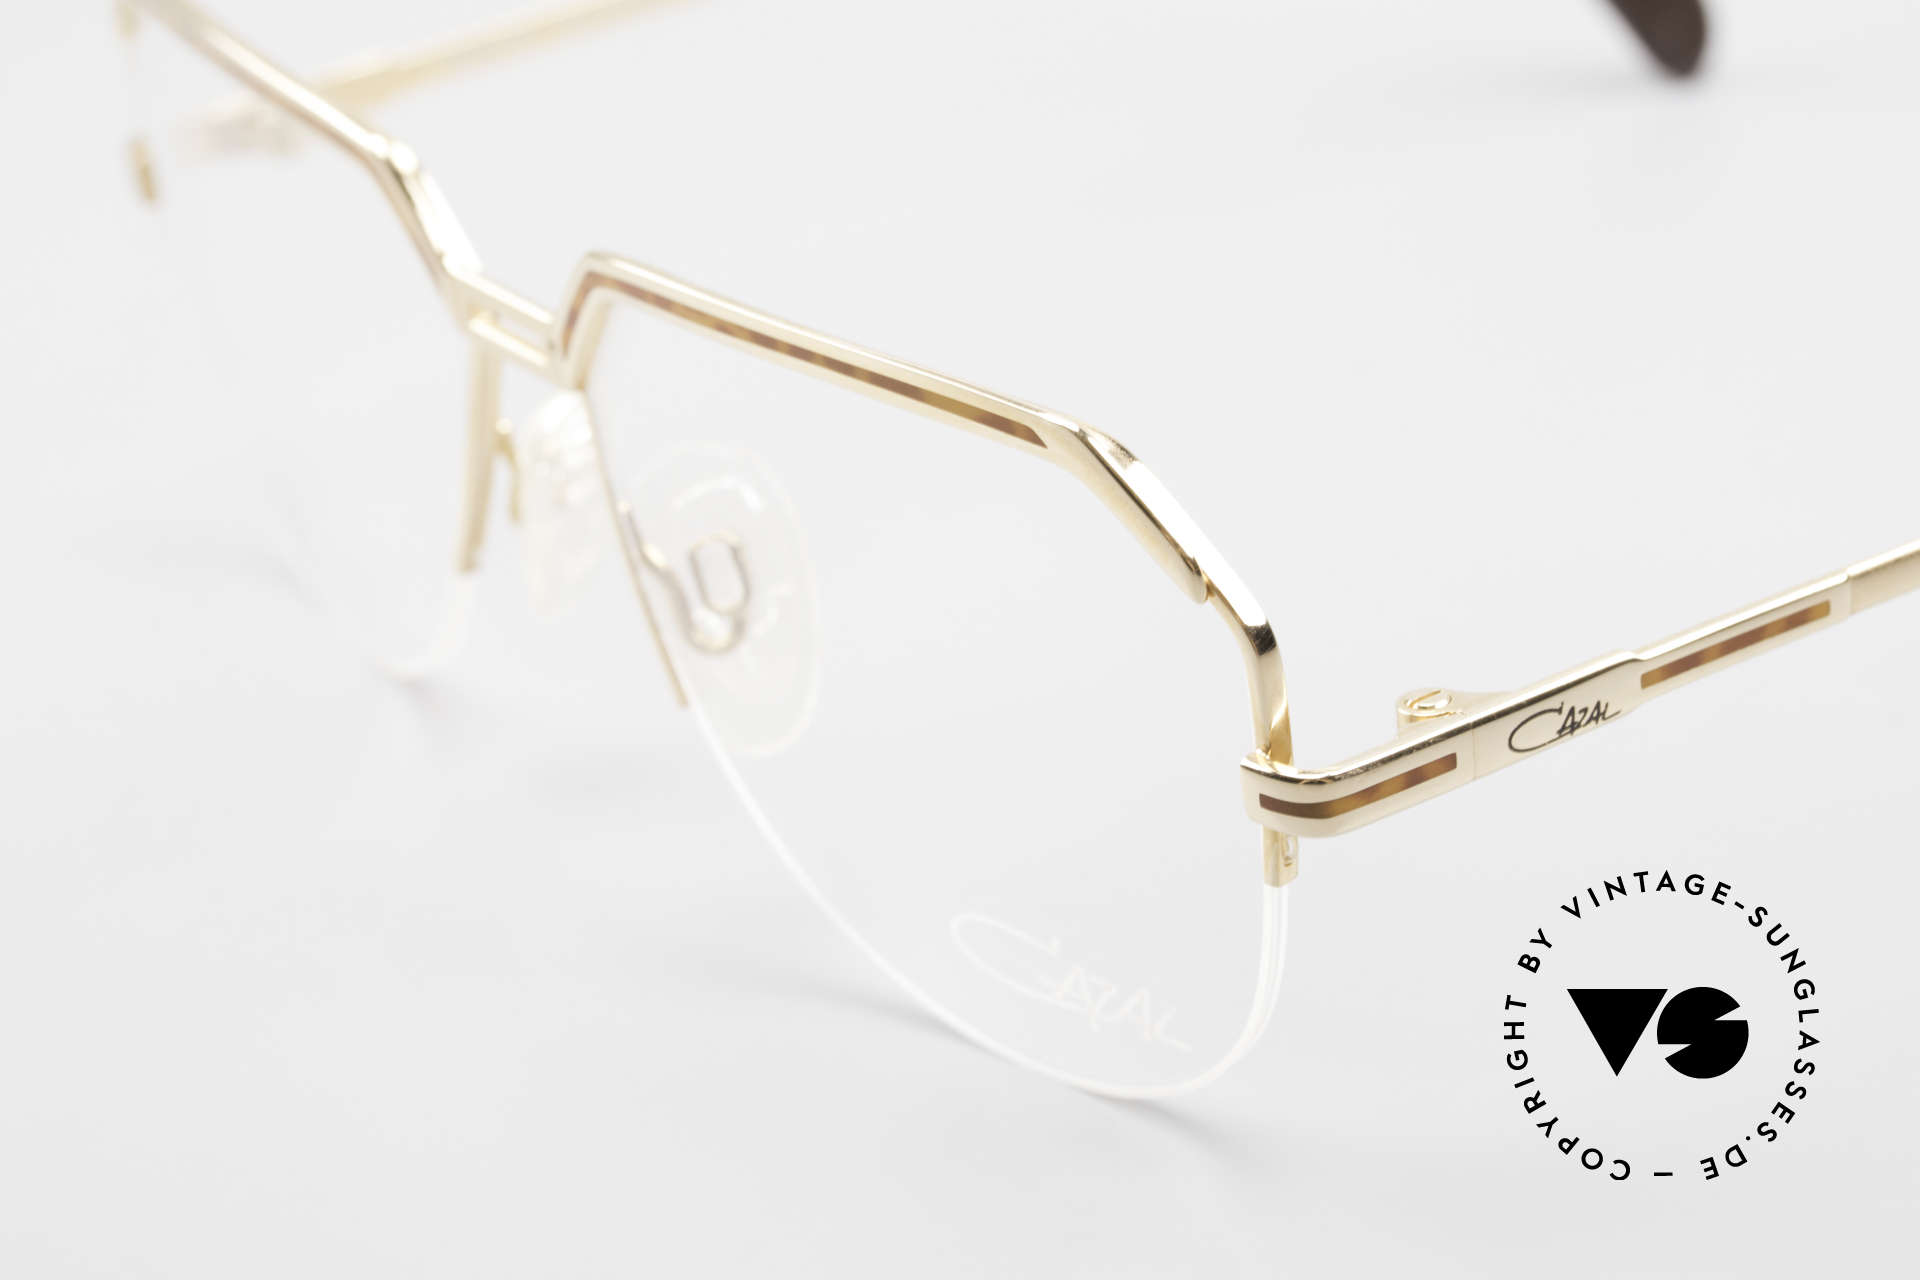 Cazal 732 80's West Germany Eyeglasses, new old stock (like all our vintage Cazal eyewear), Made for Men